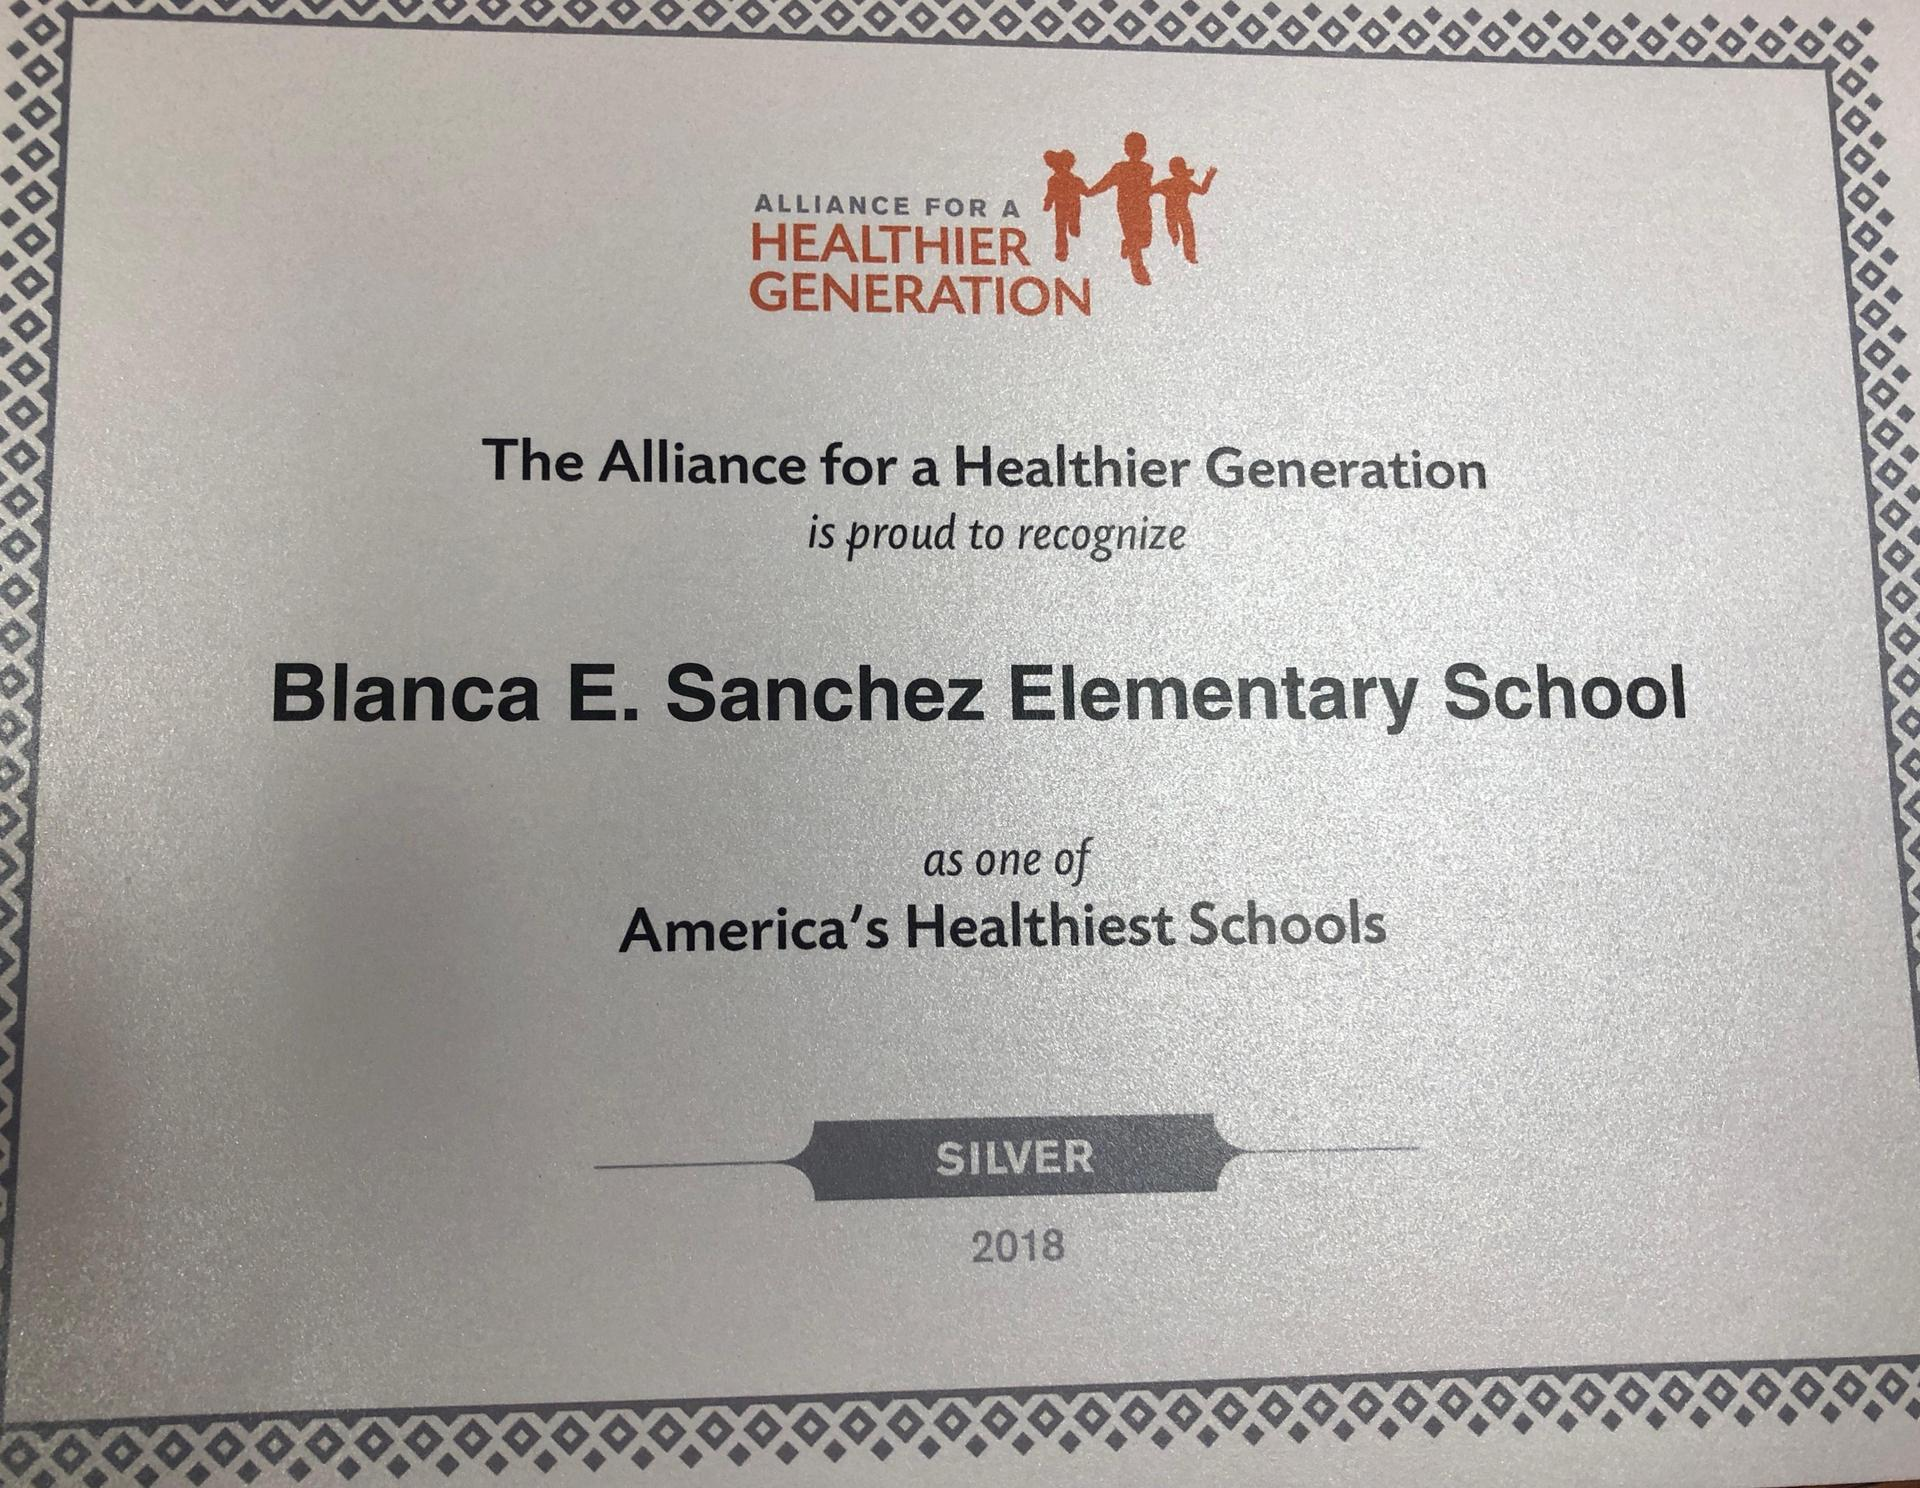 Silver Position for alliance for a healthier generation